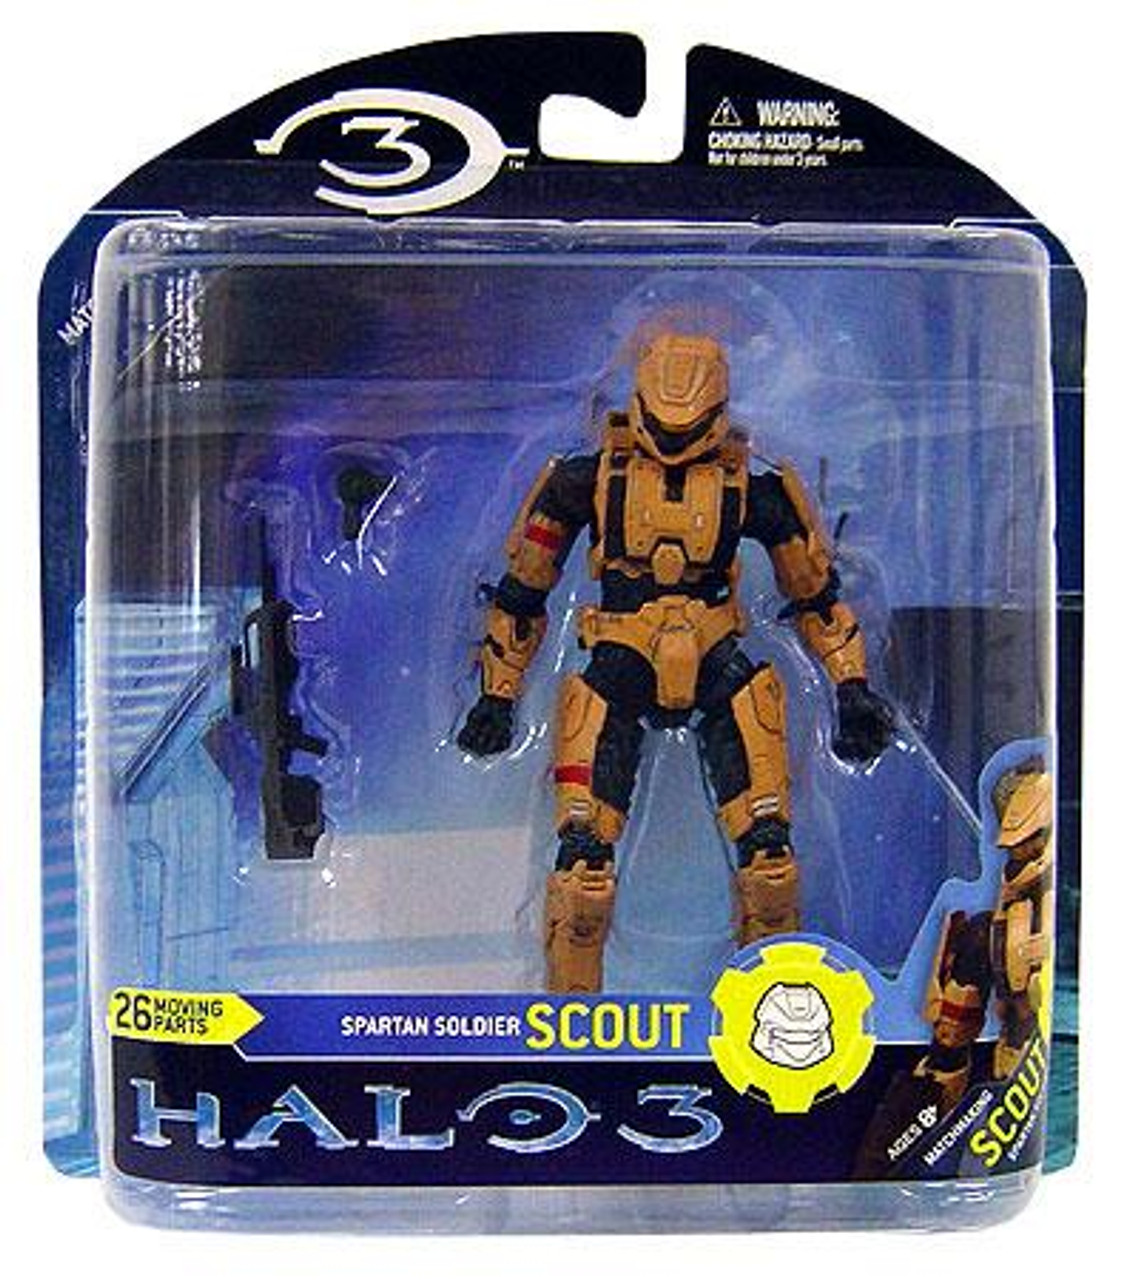 McFarlane Toys Halo 3 Series 2 Spartan Soldier Scount Action Figure [Tan]